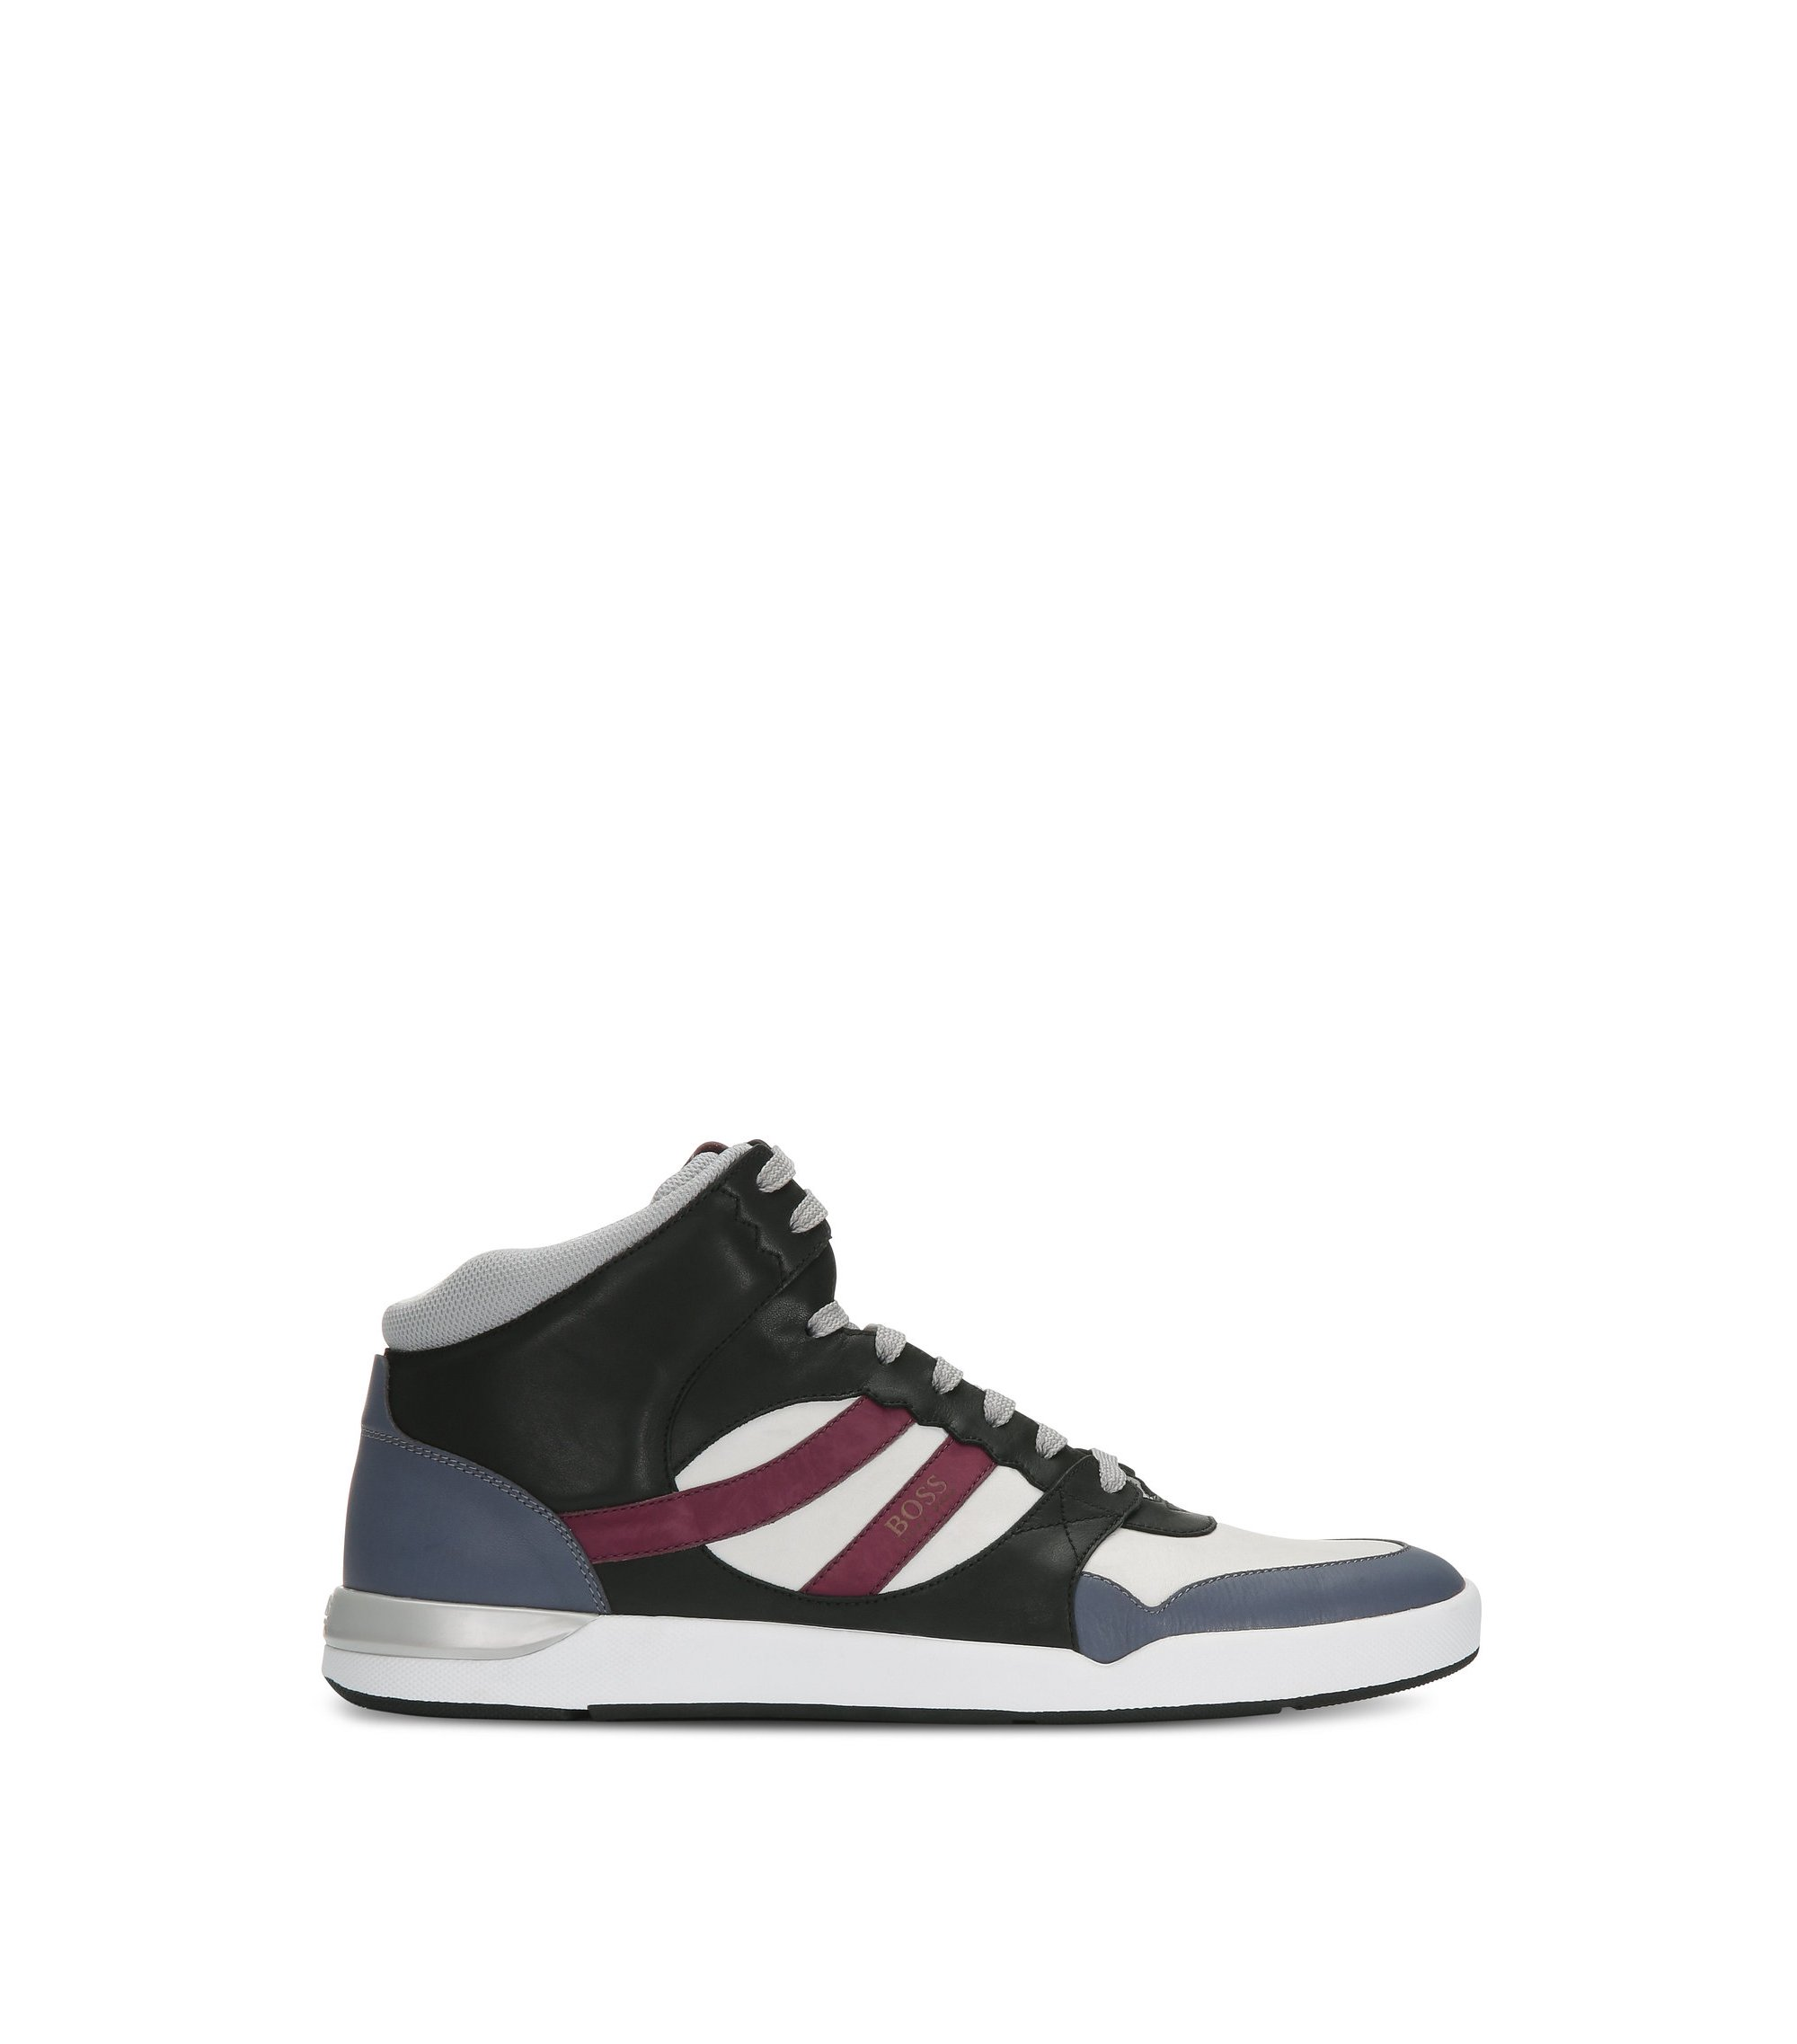 Leather High Top Sneaker | Stillnes Hito ltws, Open Purple